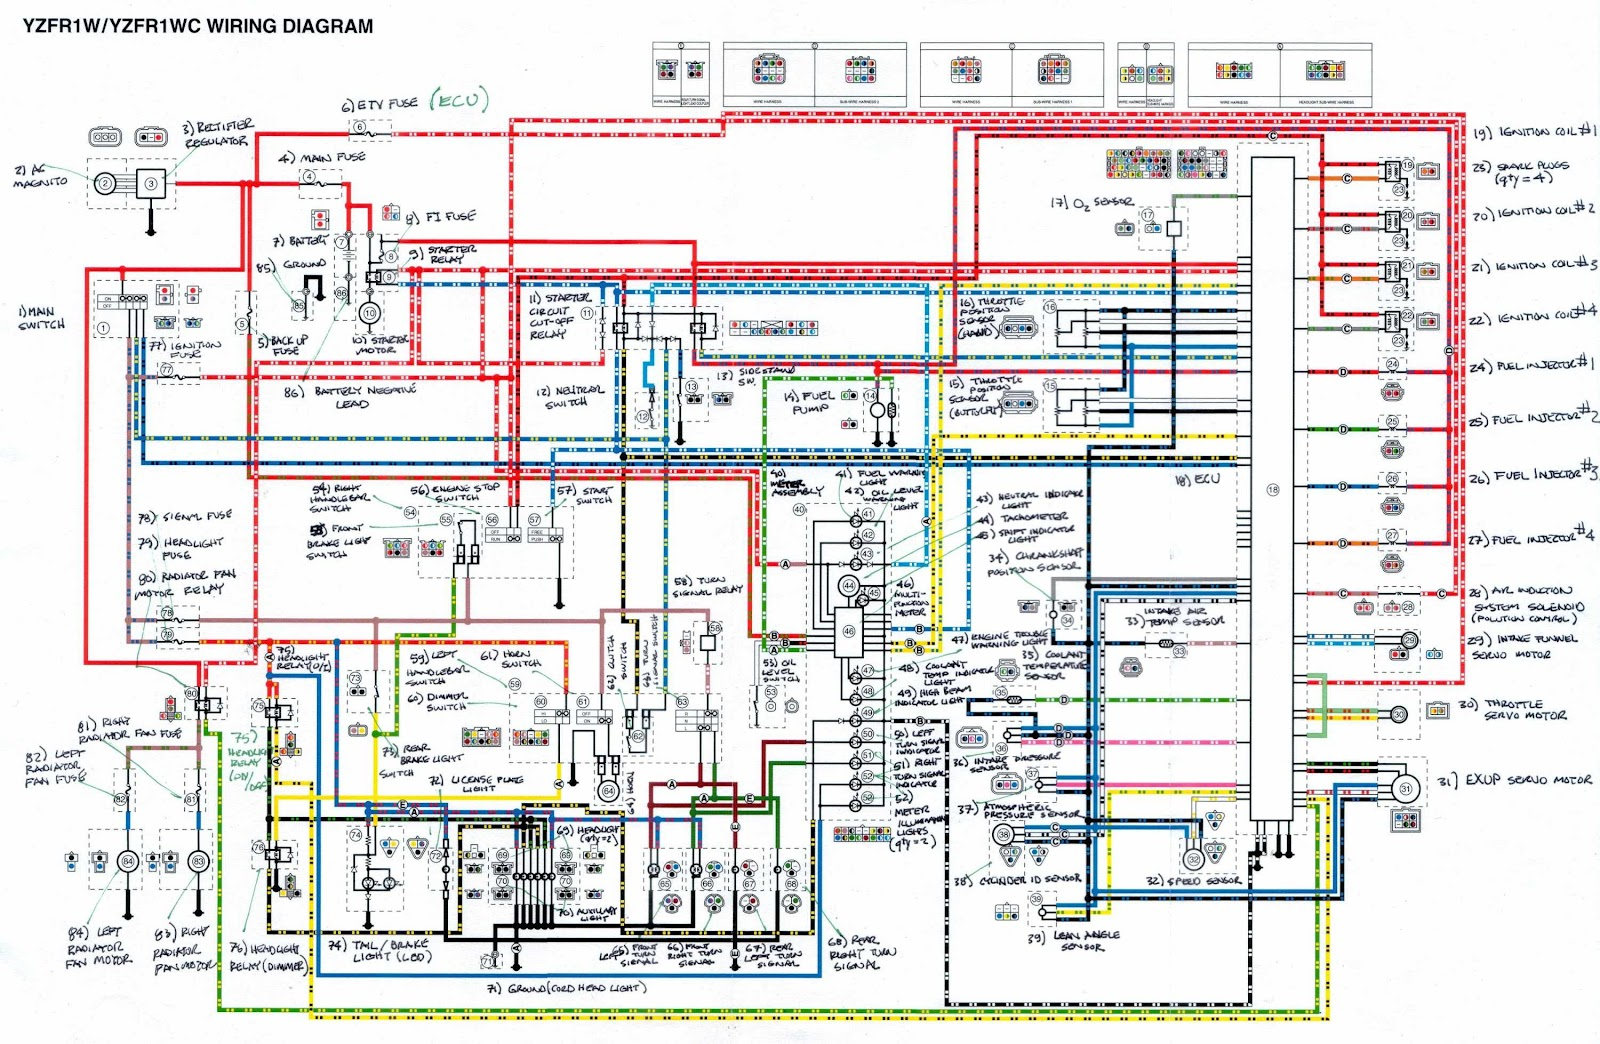 yamaha yzf r1 motorcycle wiring diagram all about wiring 1992 chevy 1500  stereo wiring diagram 1992